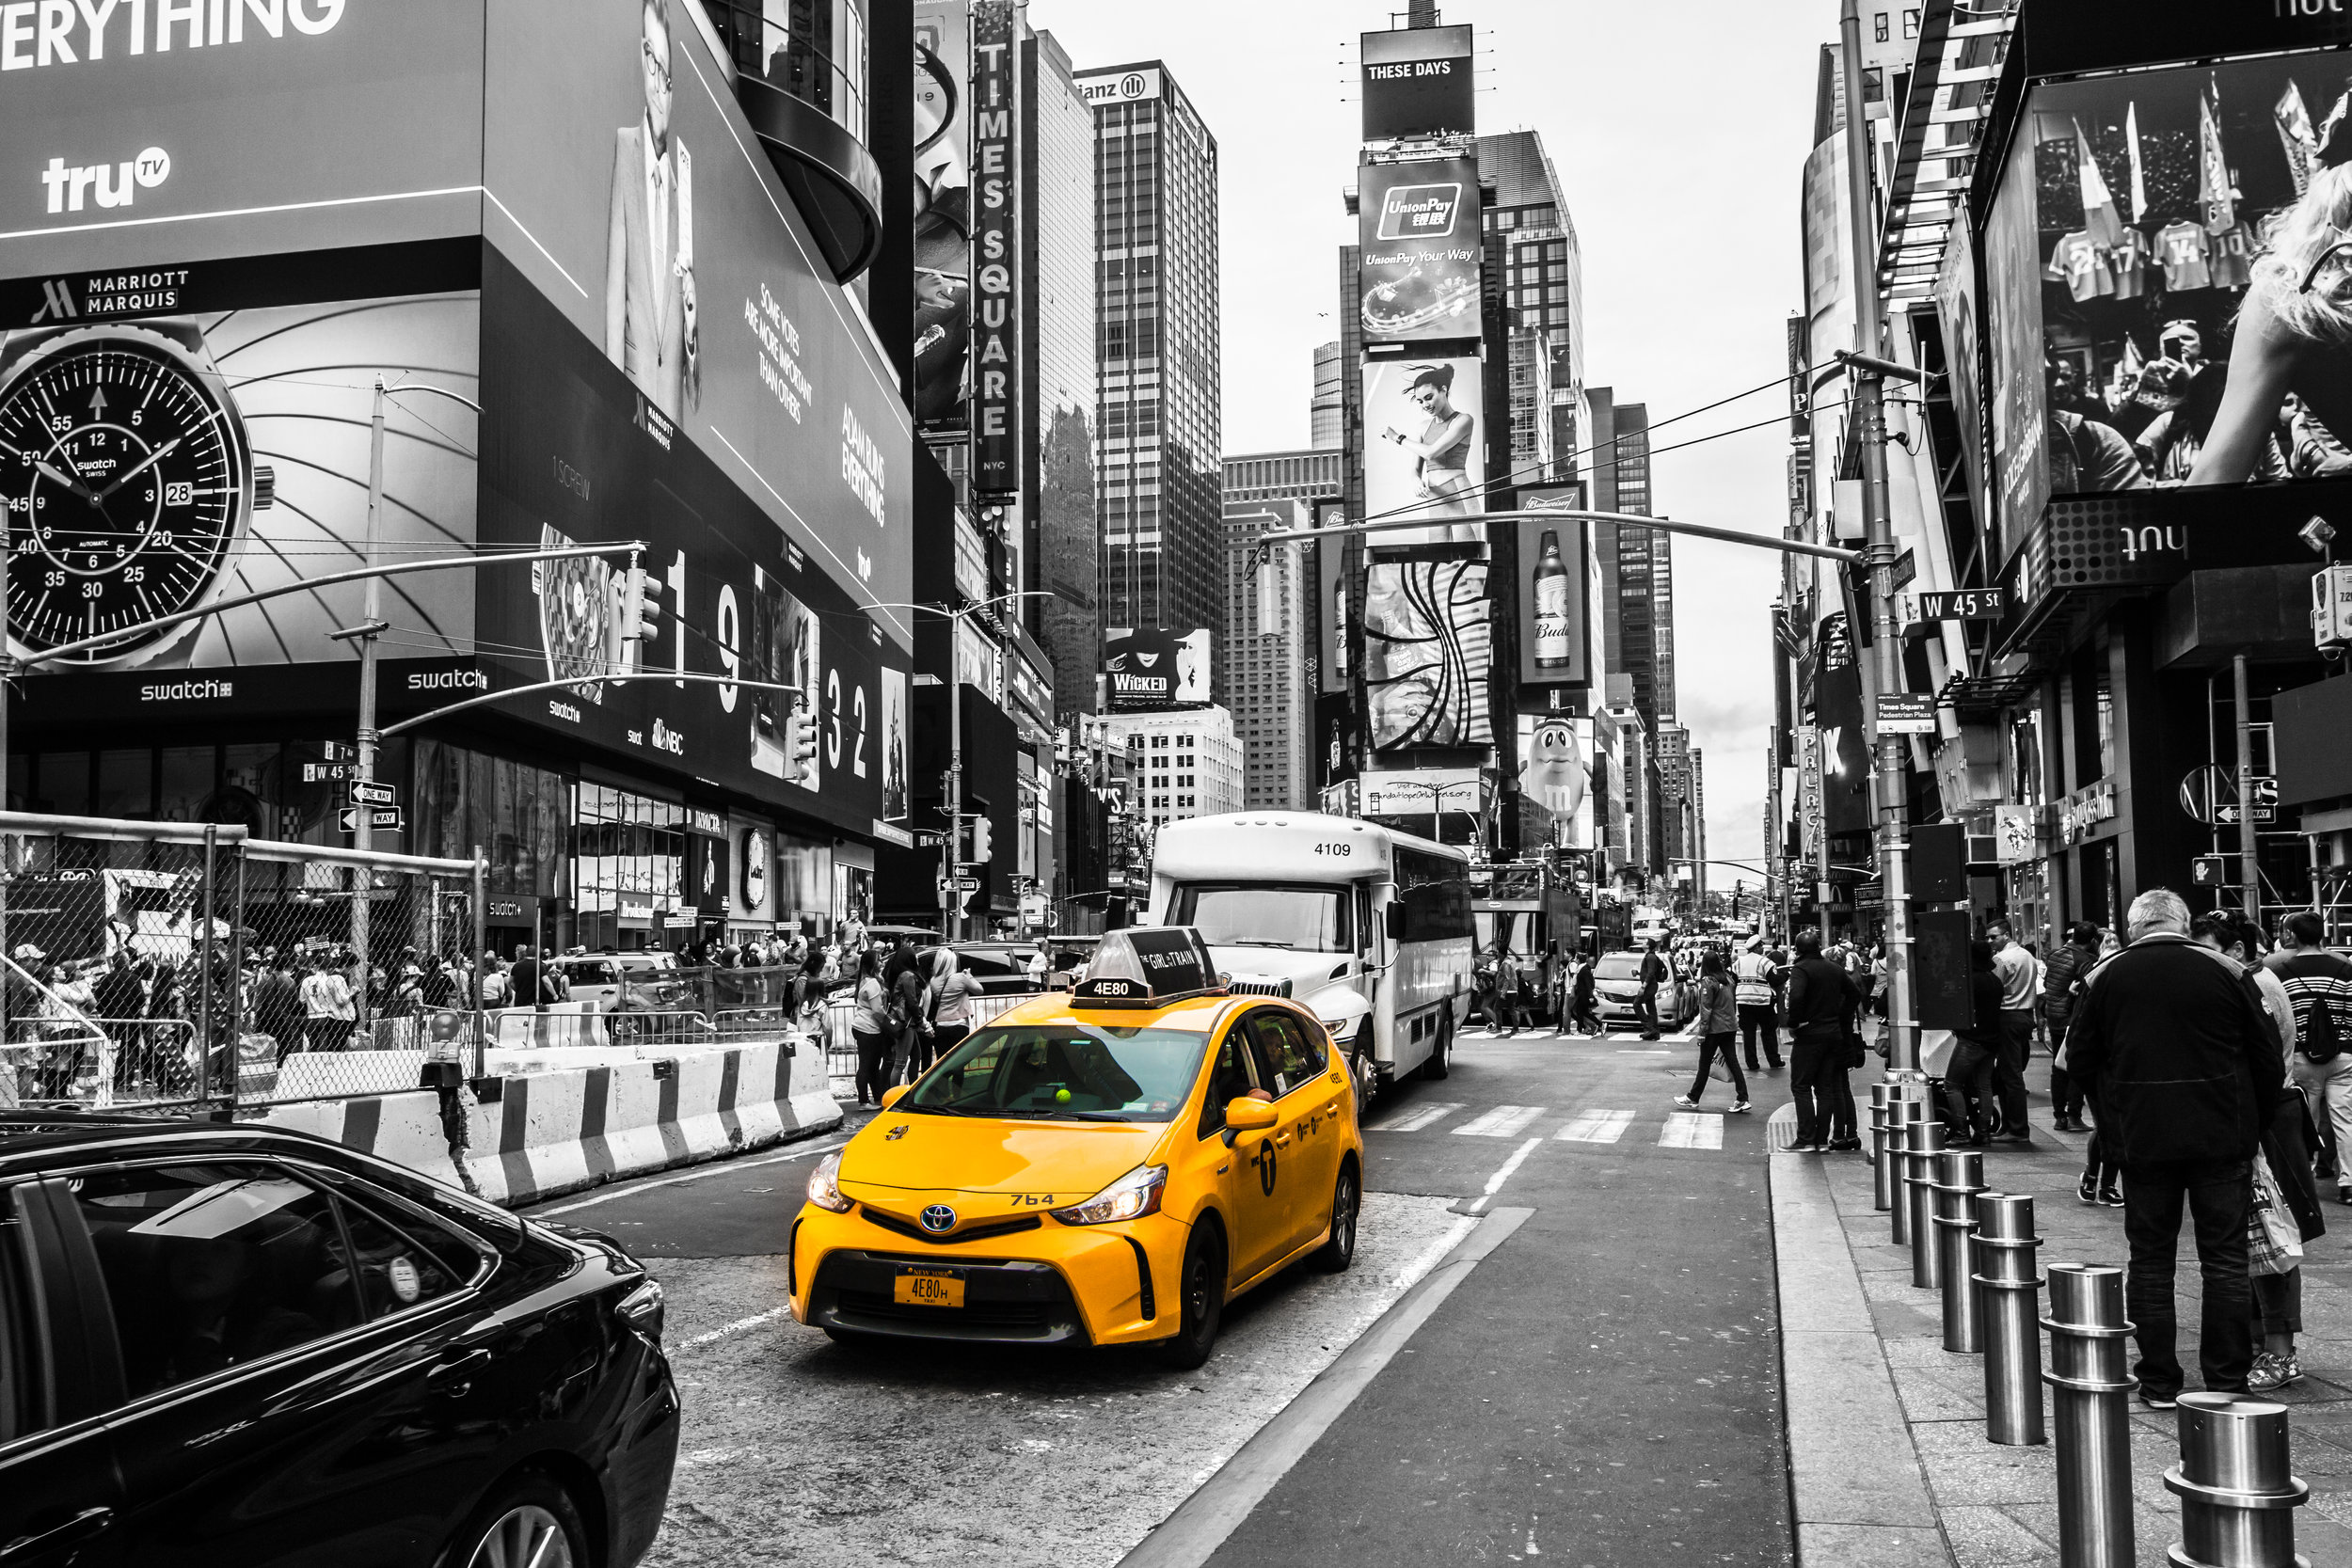 The hustle and bustle of Times Square!